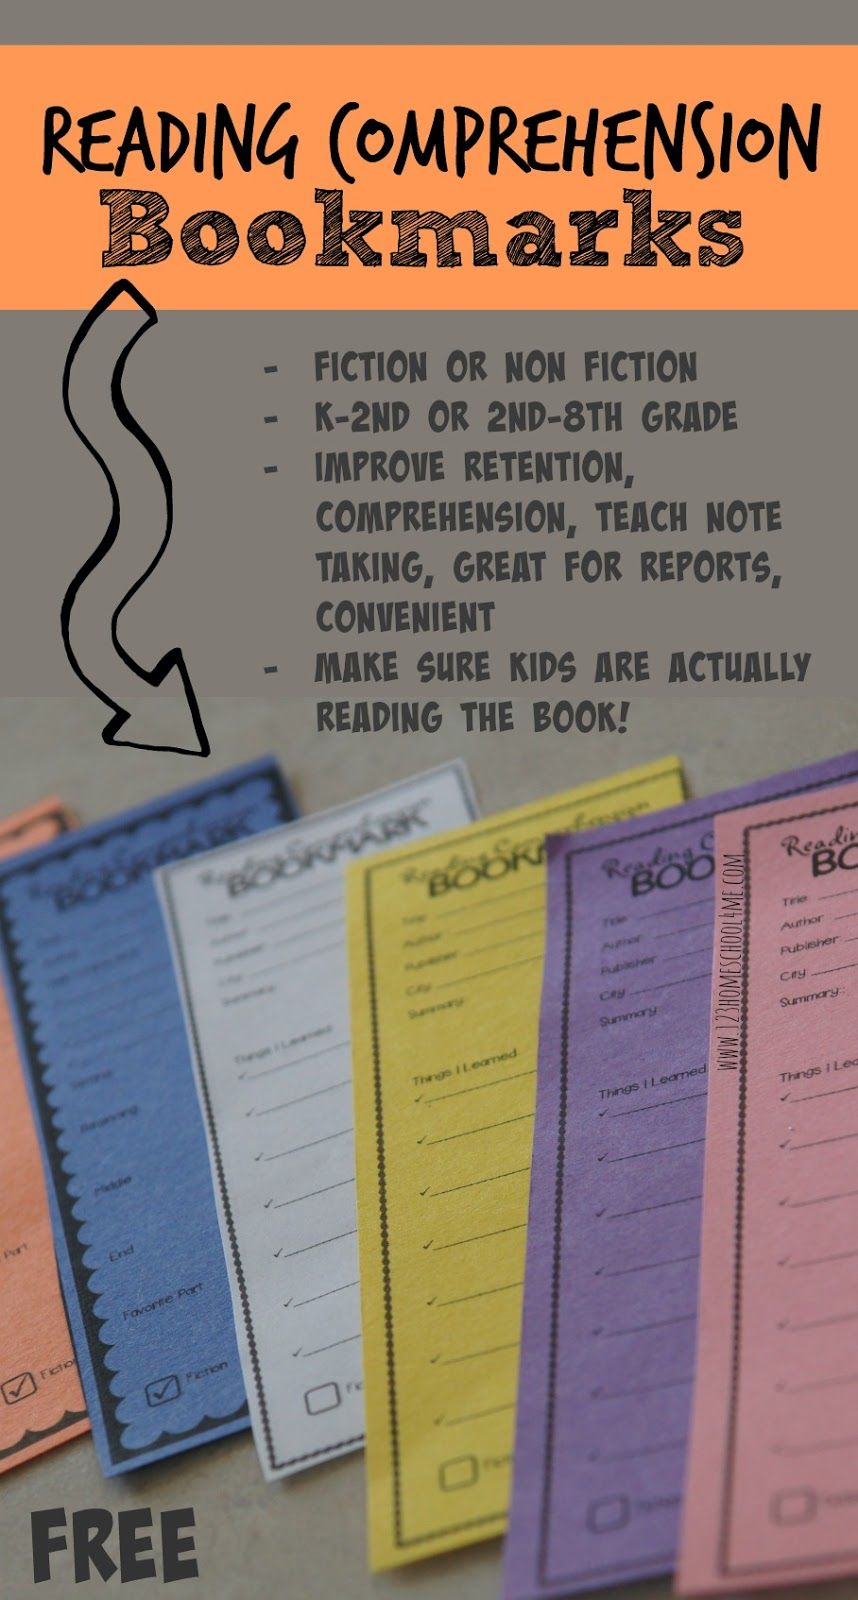 Worksheets Free 8th Grade Reading Comprehension Worksheets reading comprehension bookmarks read write pinterest free are great to help kids impreove retention teach note taking make reports on both fiction and